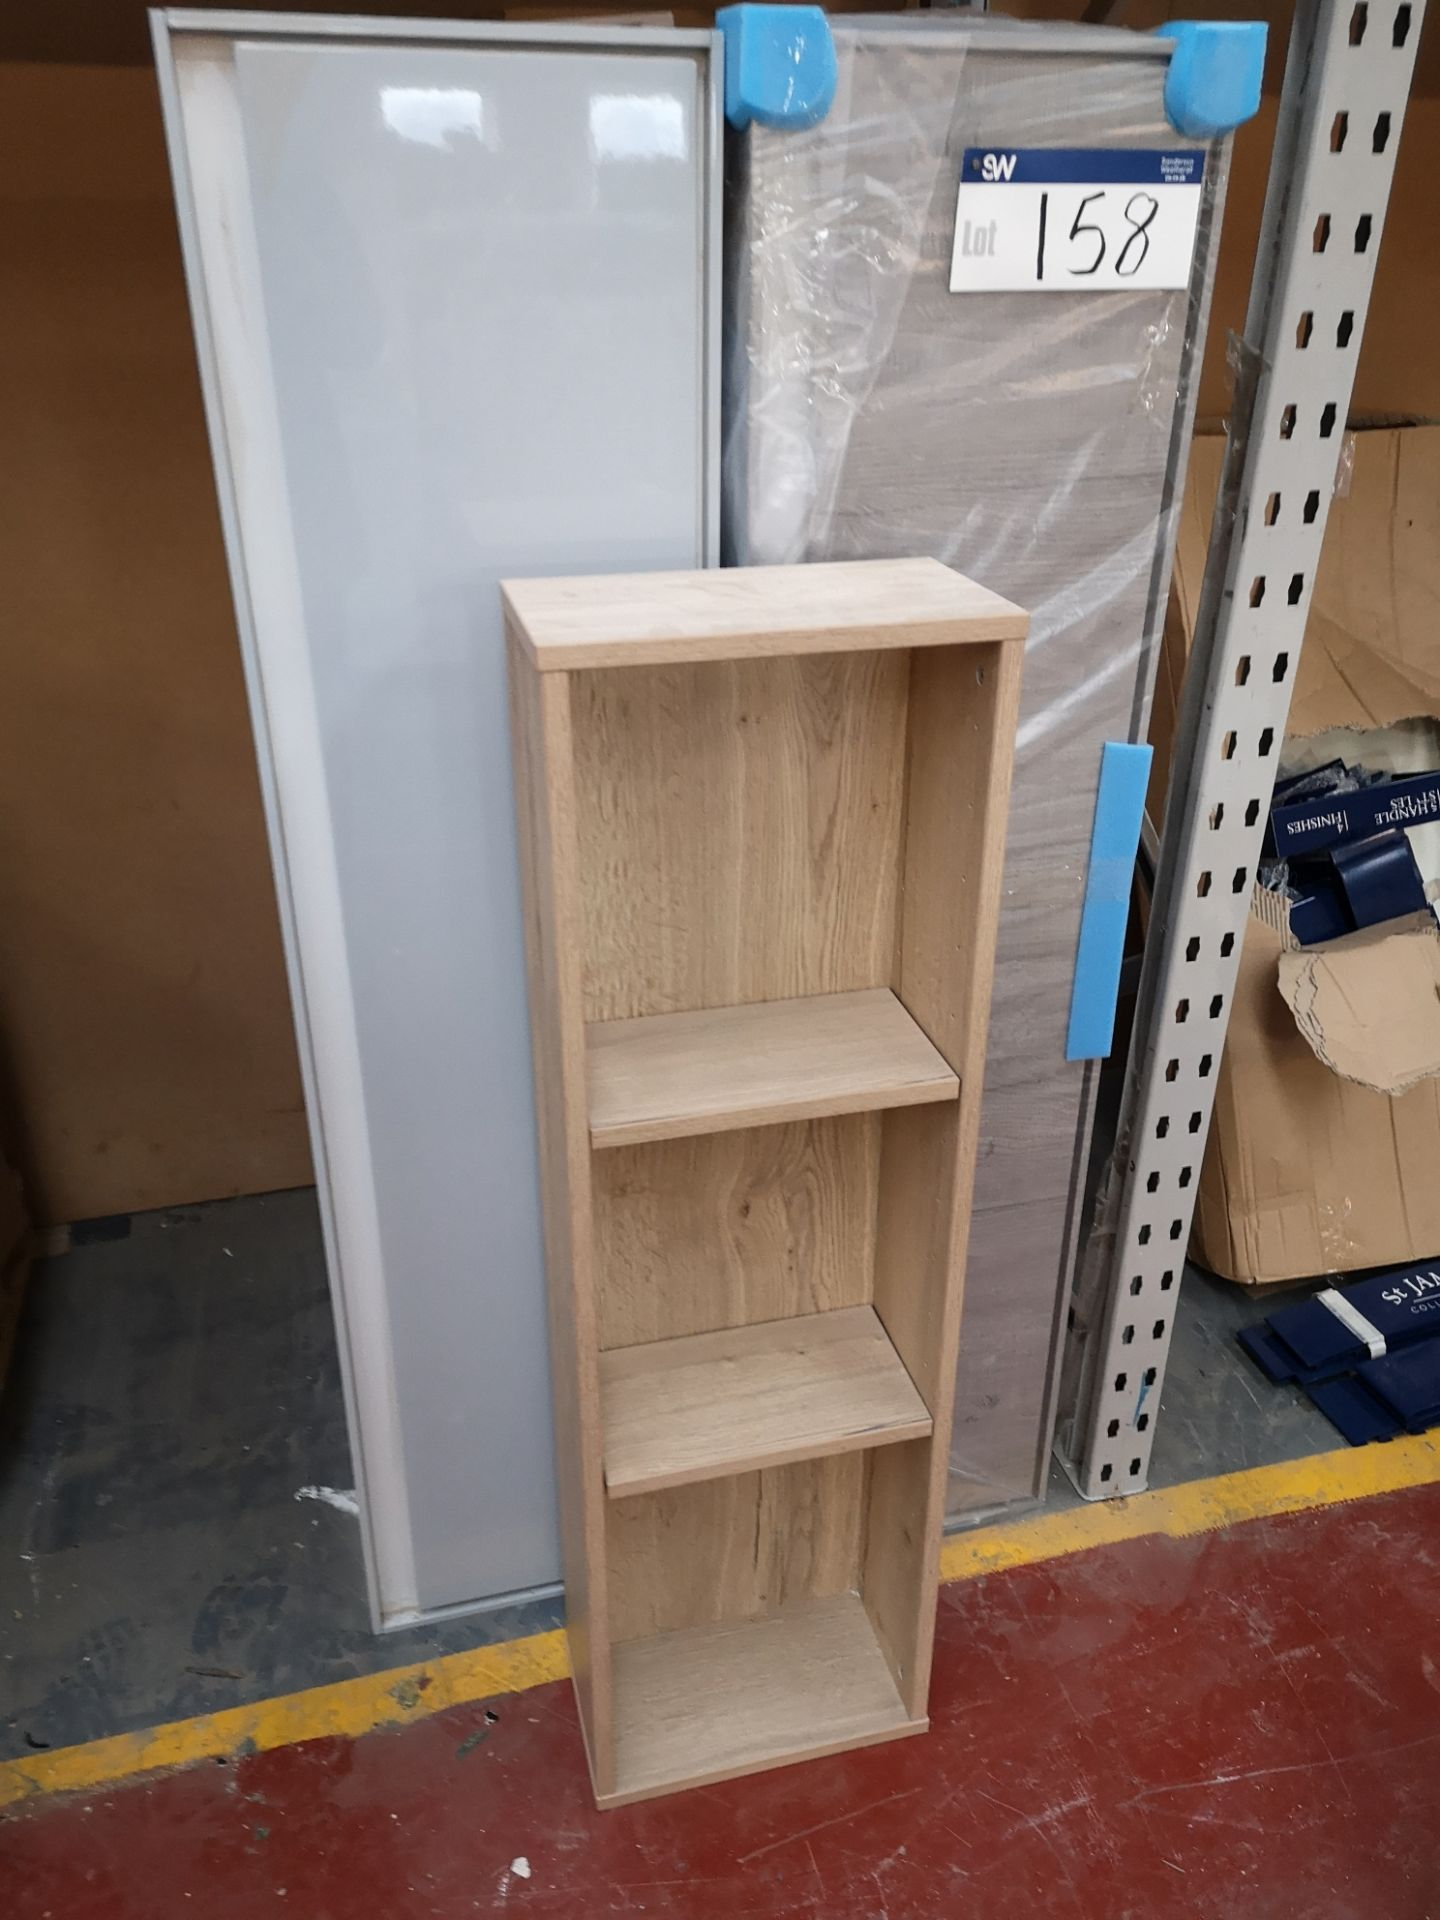 Lot 158 - 2 Bathroom Cabinets and a Shelving Unit